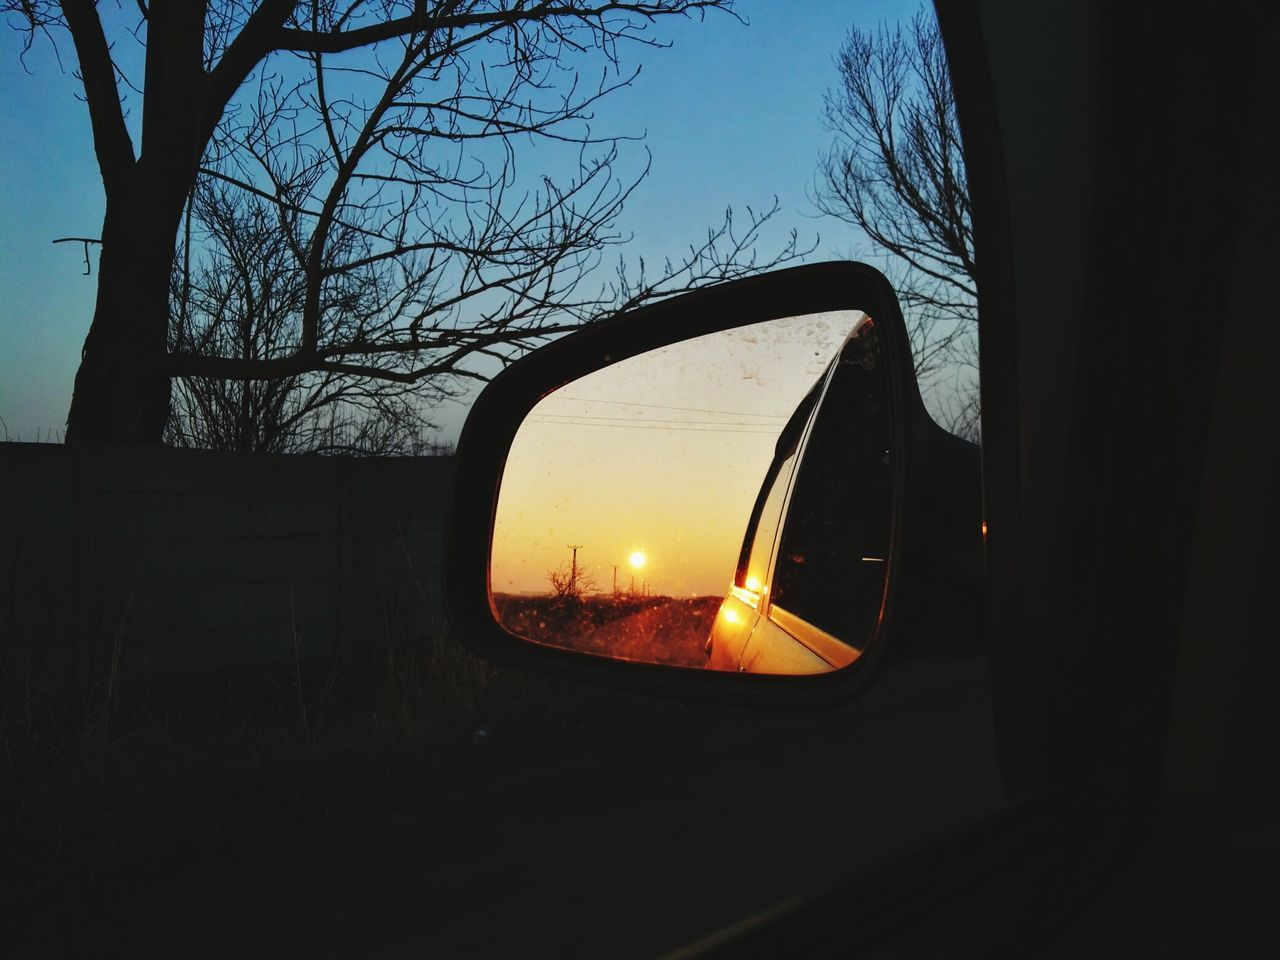 When the sun goes down... HuaweiP8 Sunset Reflection Window Sky No People Side-view Mirror Car Beauty In Nature Outdoors Vehicle Mirror Nature Winter Cold Temperature Clear Sky